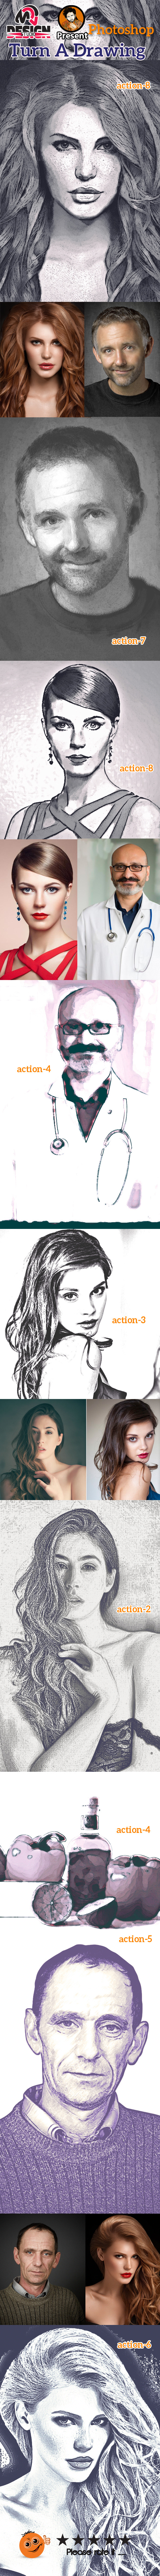 Turn A Drawing Action - Actions Photoshop